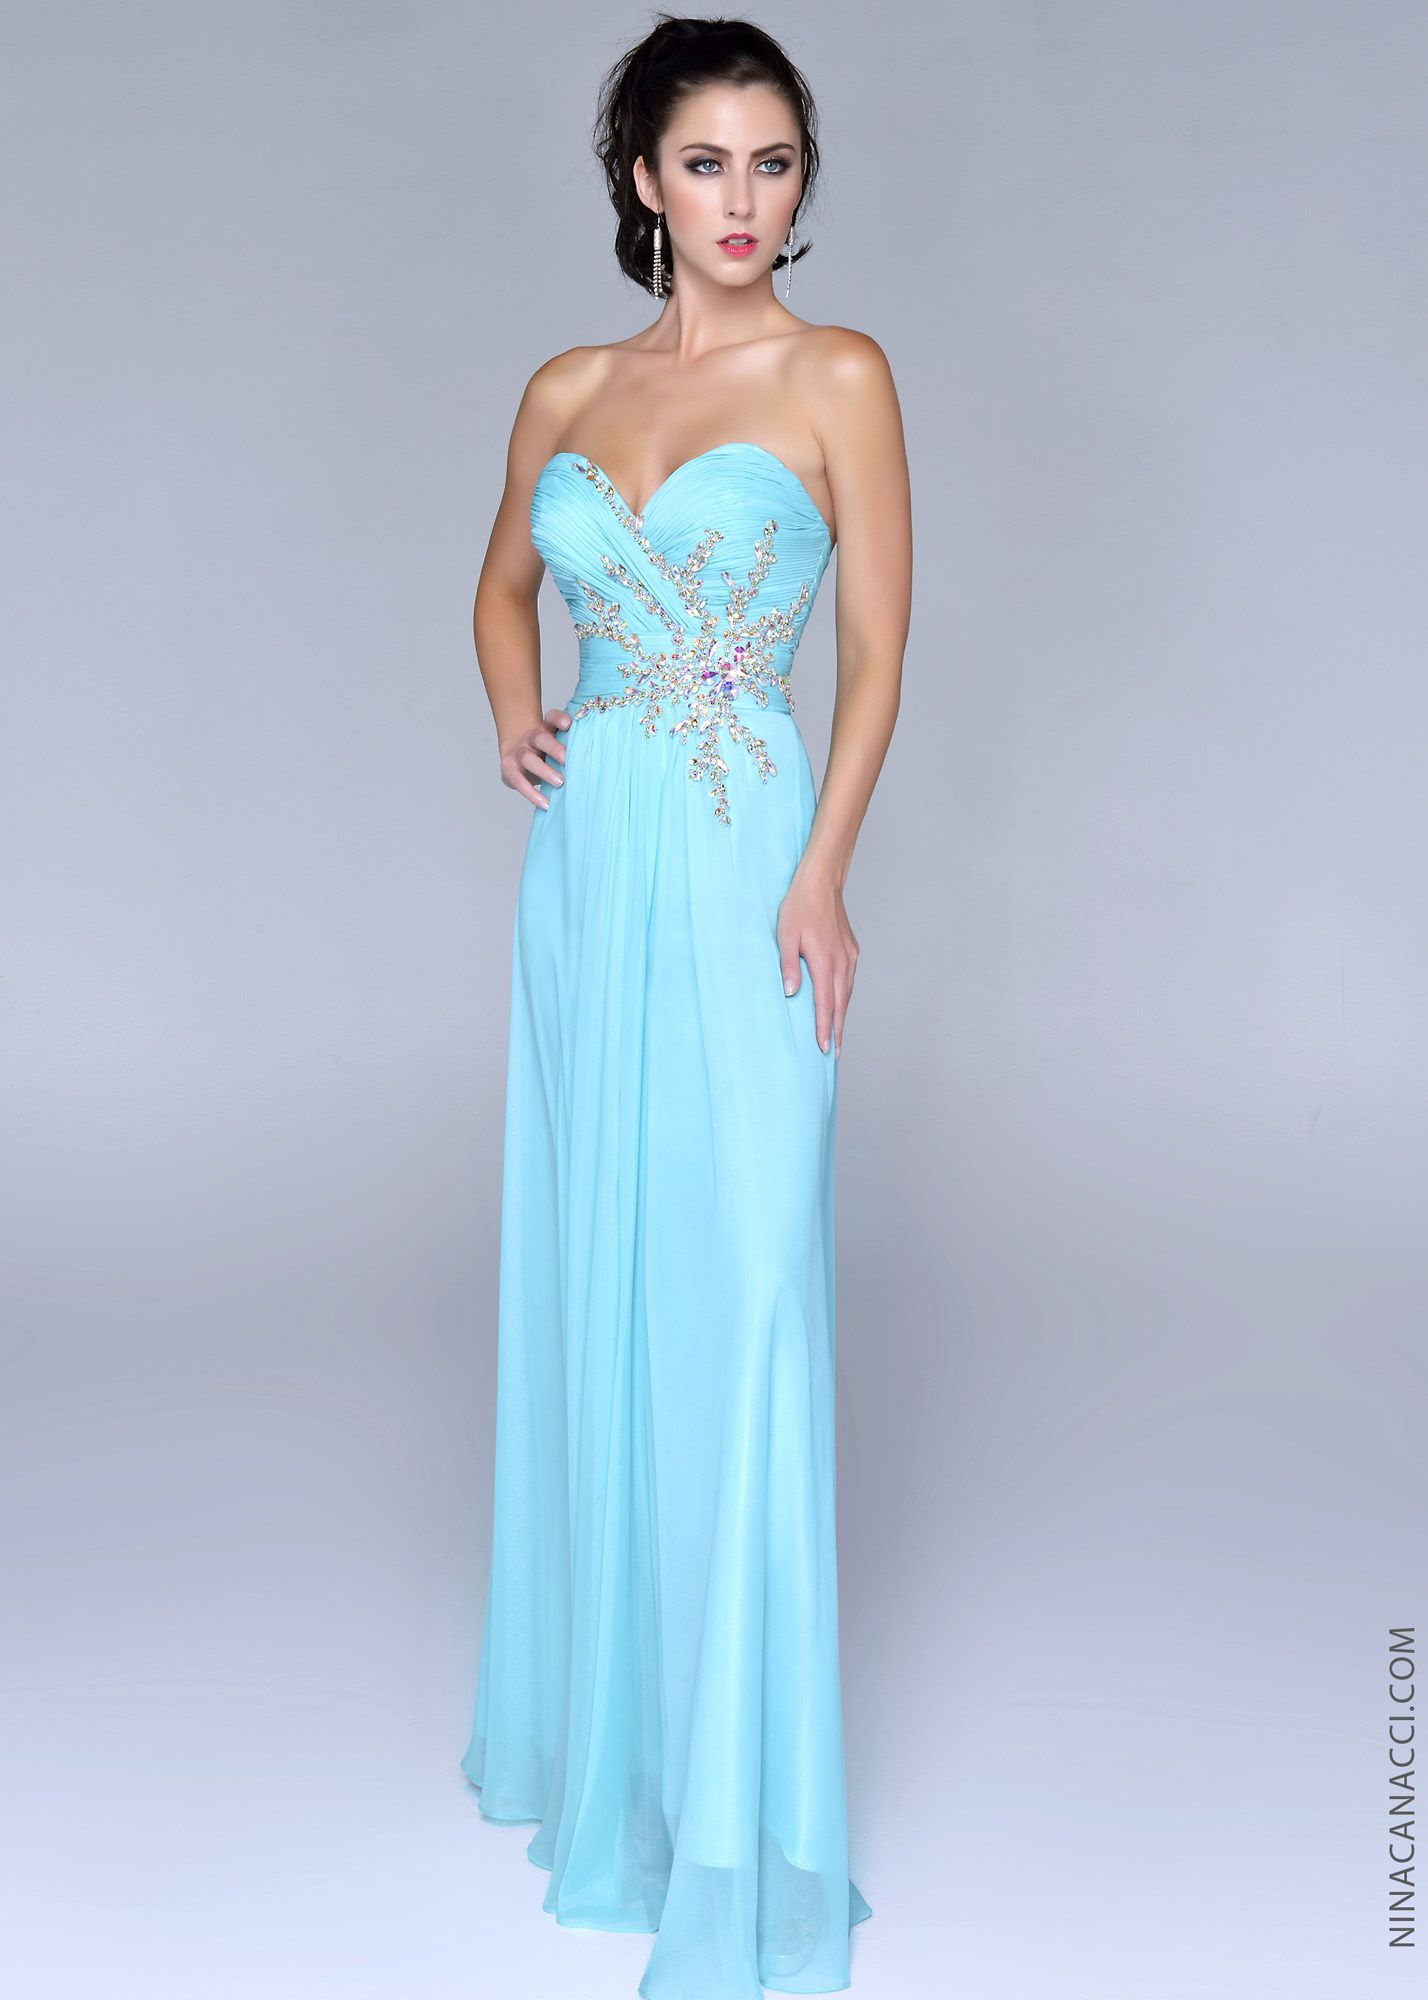 Nina Canacci 2023 Strapless Beaded Gown 2014 Prom Collection